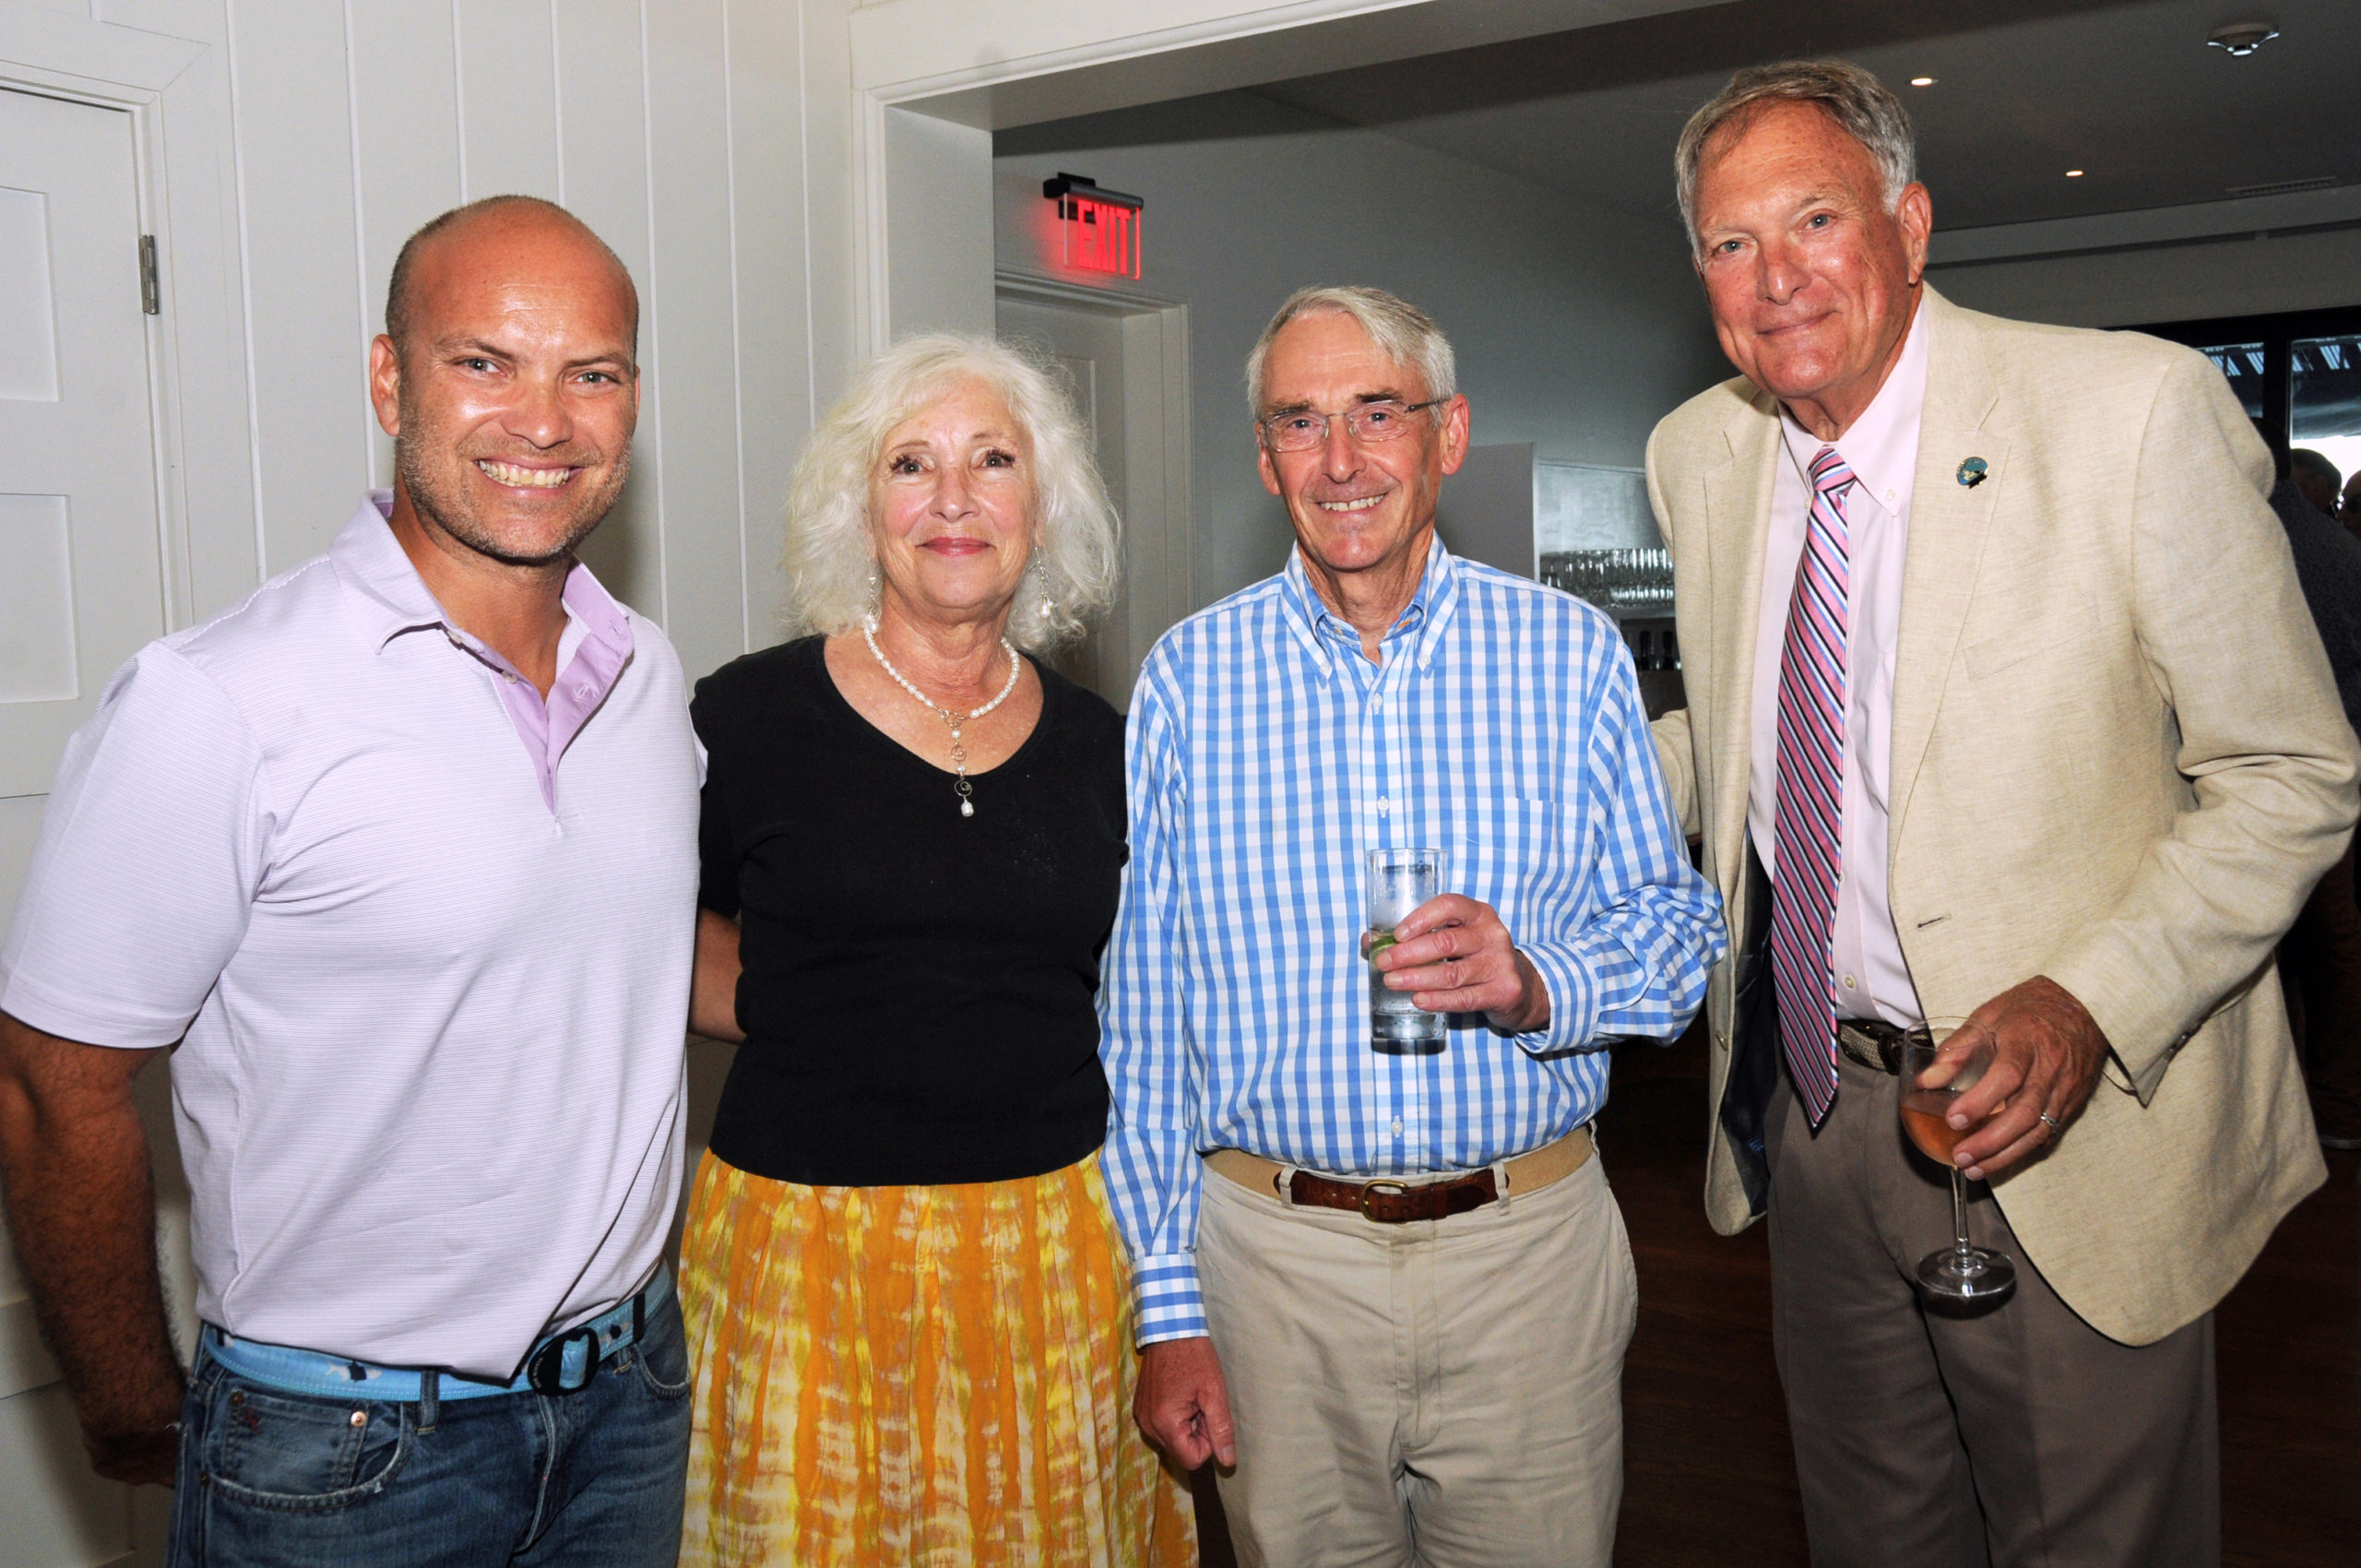 East Hampton Town Councilman David Lys; Executive Director of the Robert David Lion Gardiner Foundation Kathryn Curran; Robert Hefner and Noel Gish at the Montauk Historical Society's cocktail party on July 14 to launch a public capital campaign for the Montauk Point Lighthouse restoration.  Work on restoring the tower began in 2019, and is scheduled to be completed by next year.     RICHARD LEWIN